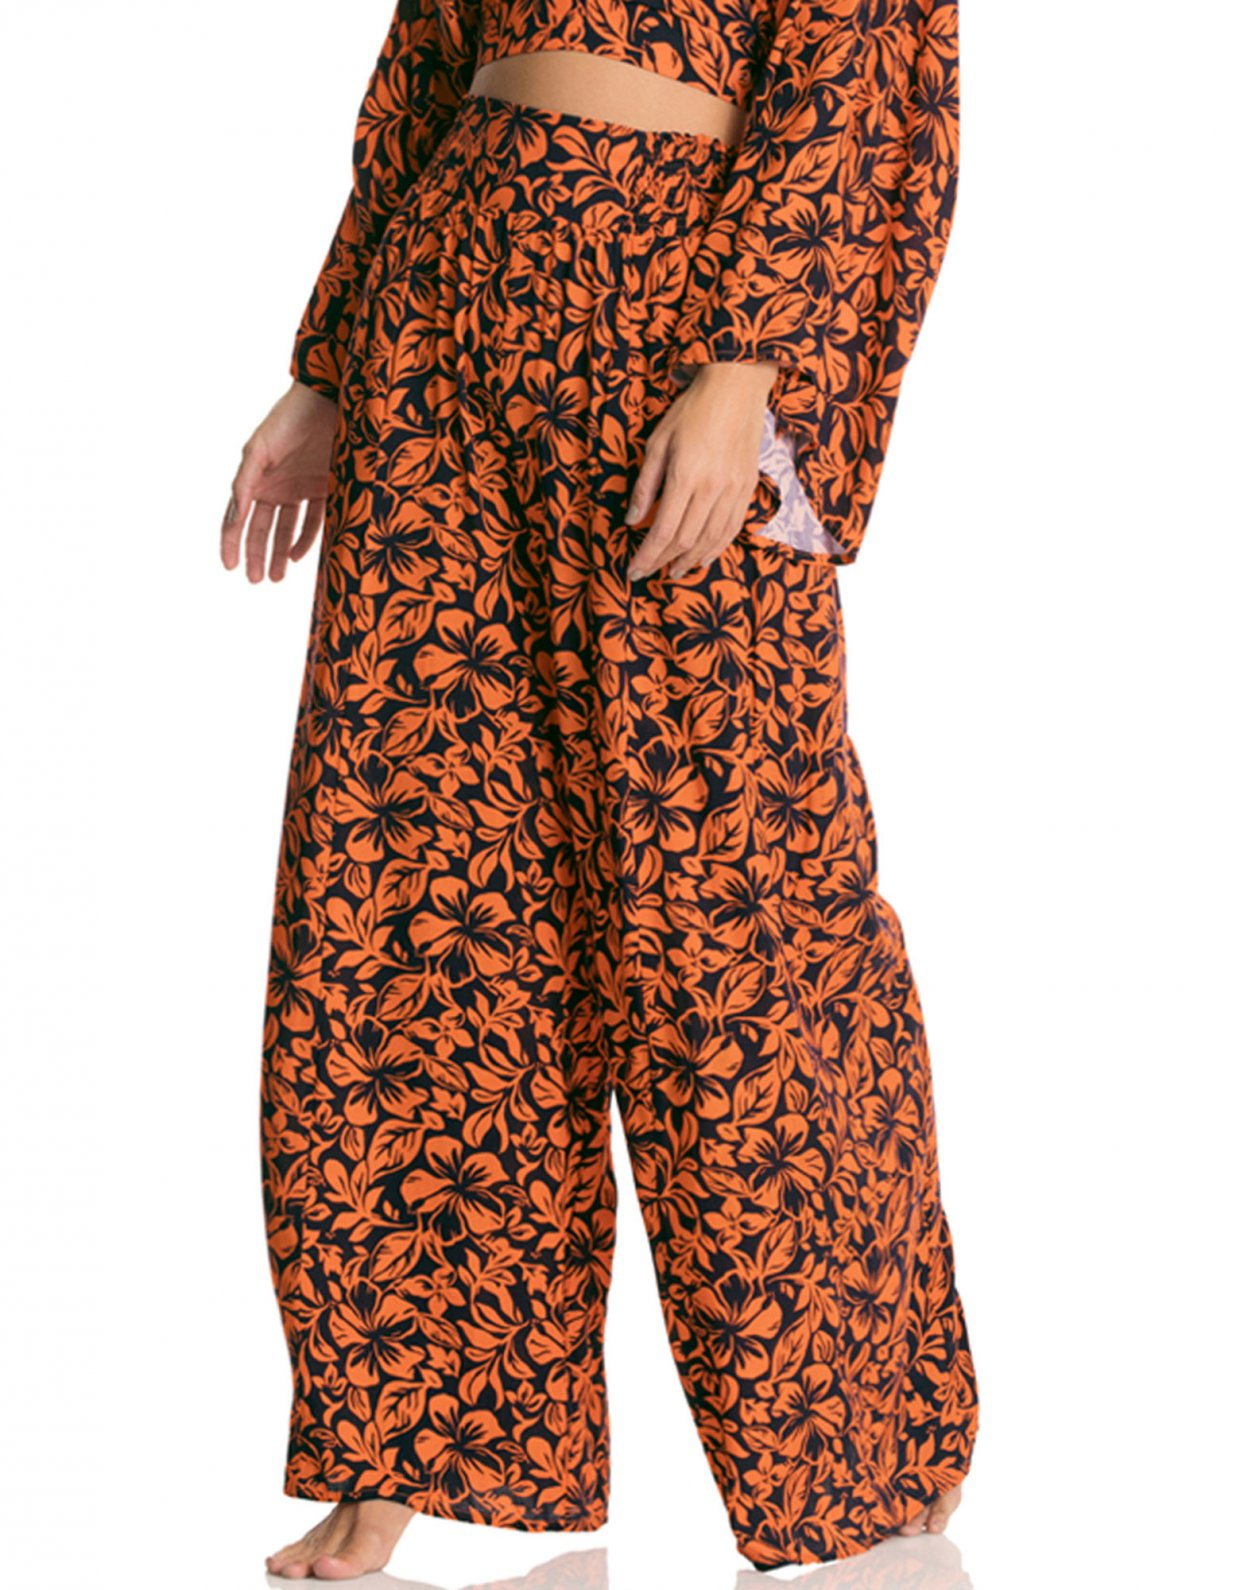 Maaji Dreaming believer pants